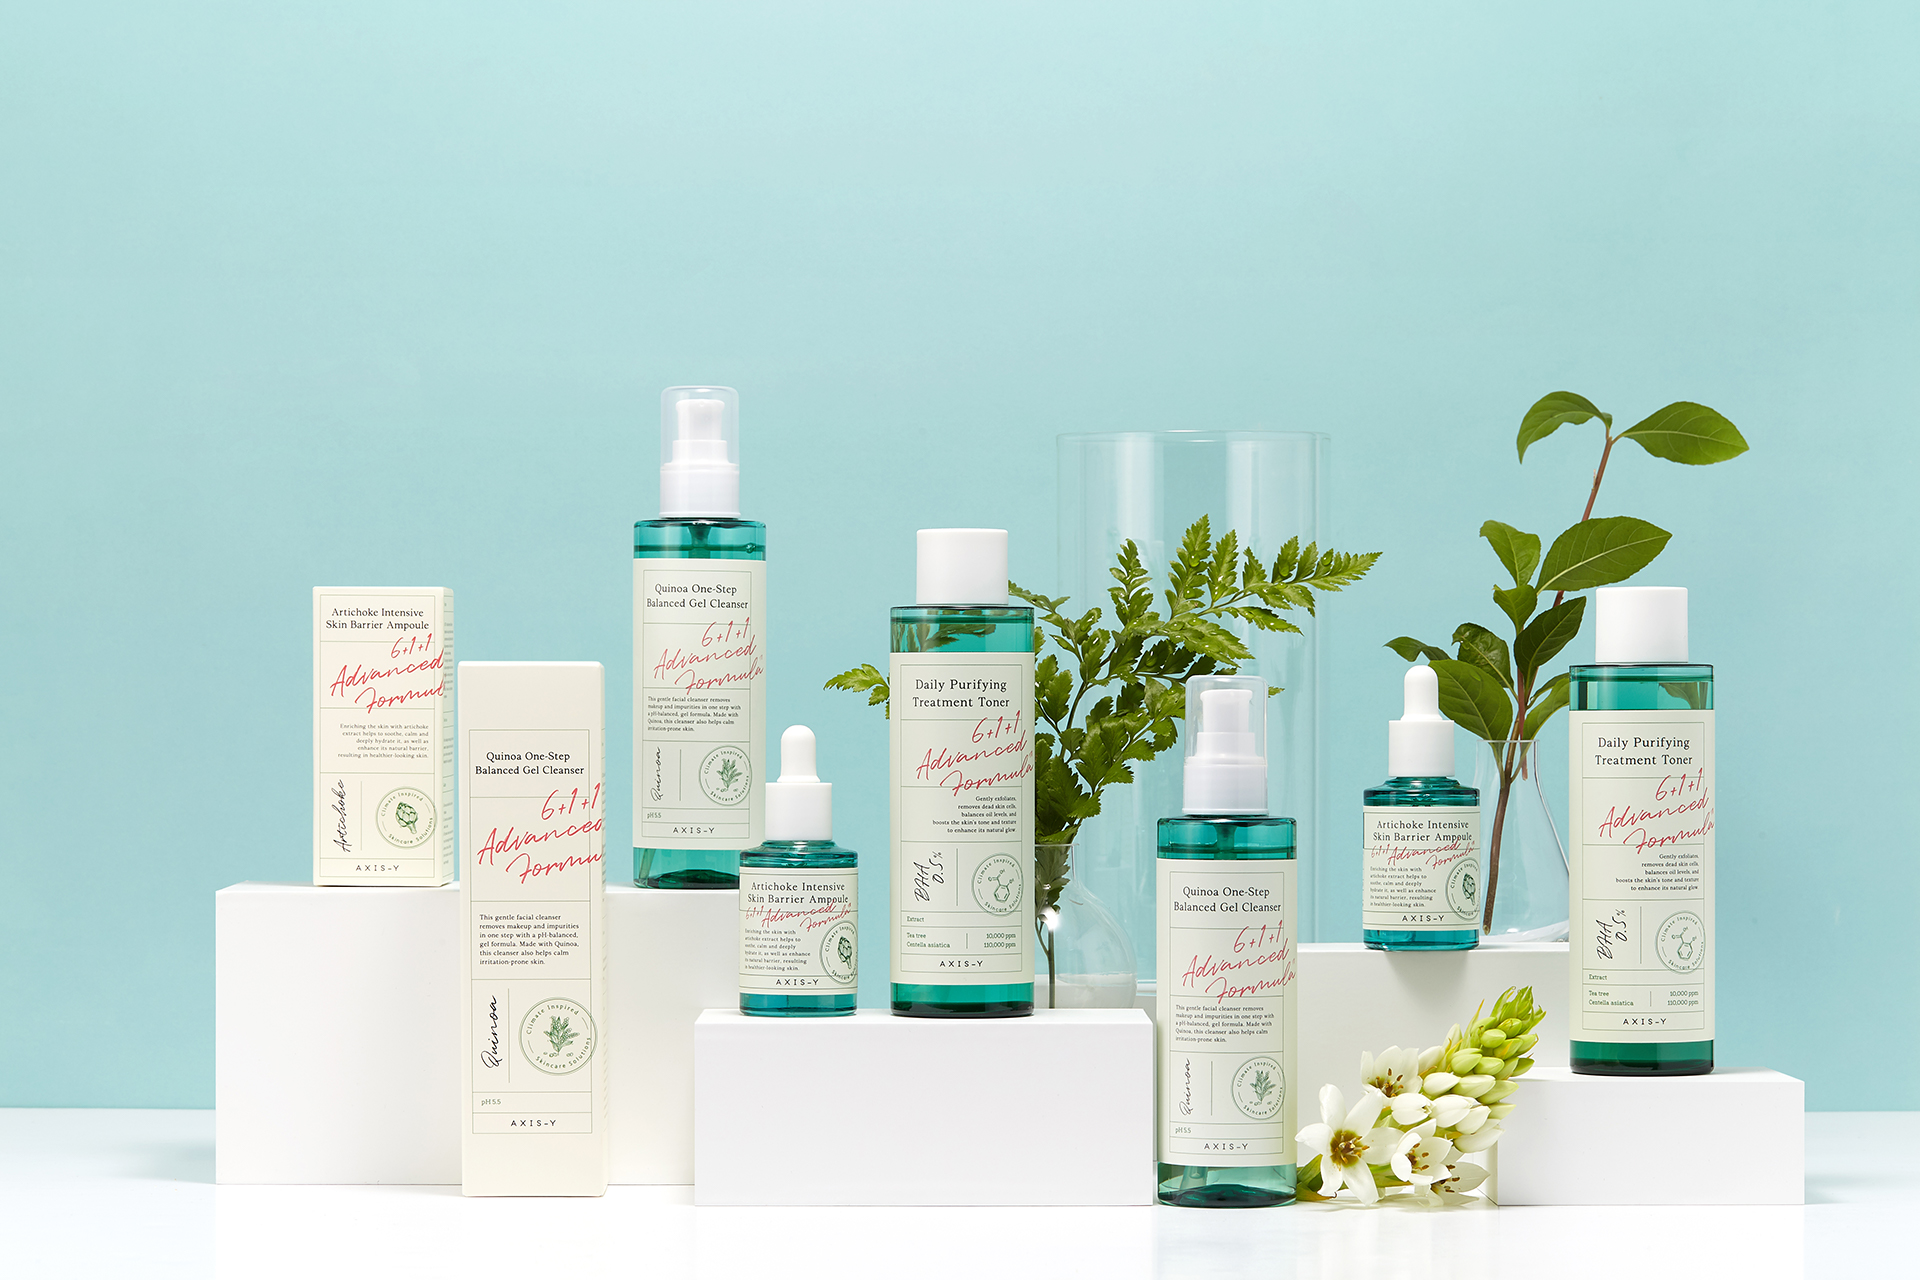 axisy skincare 611 collection.jpg